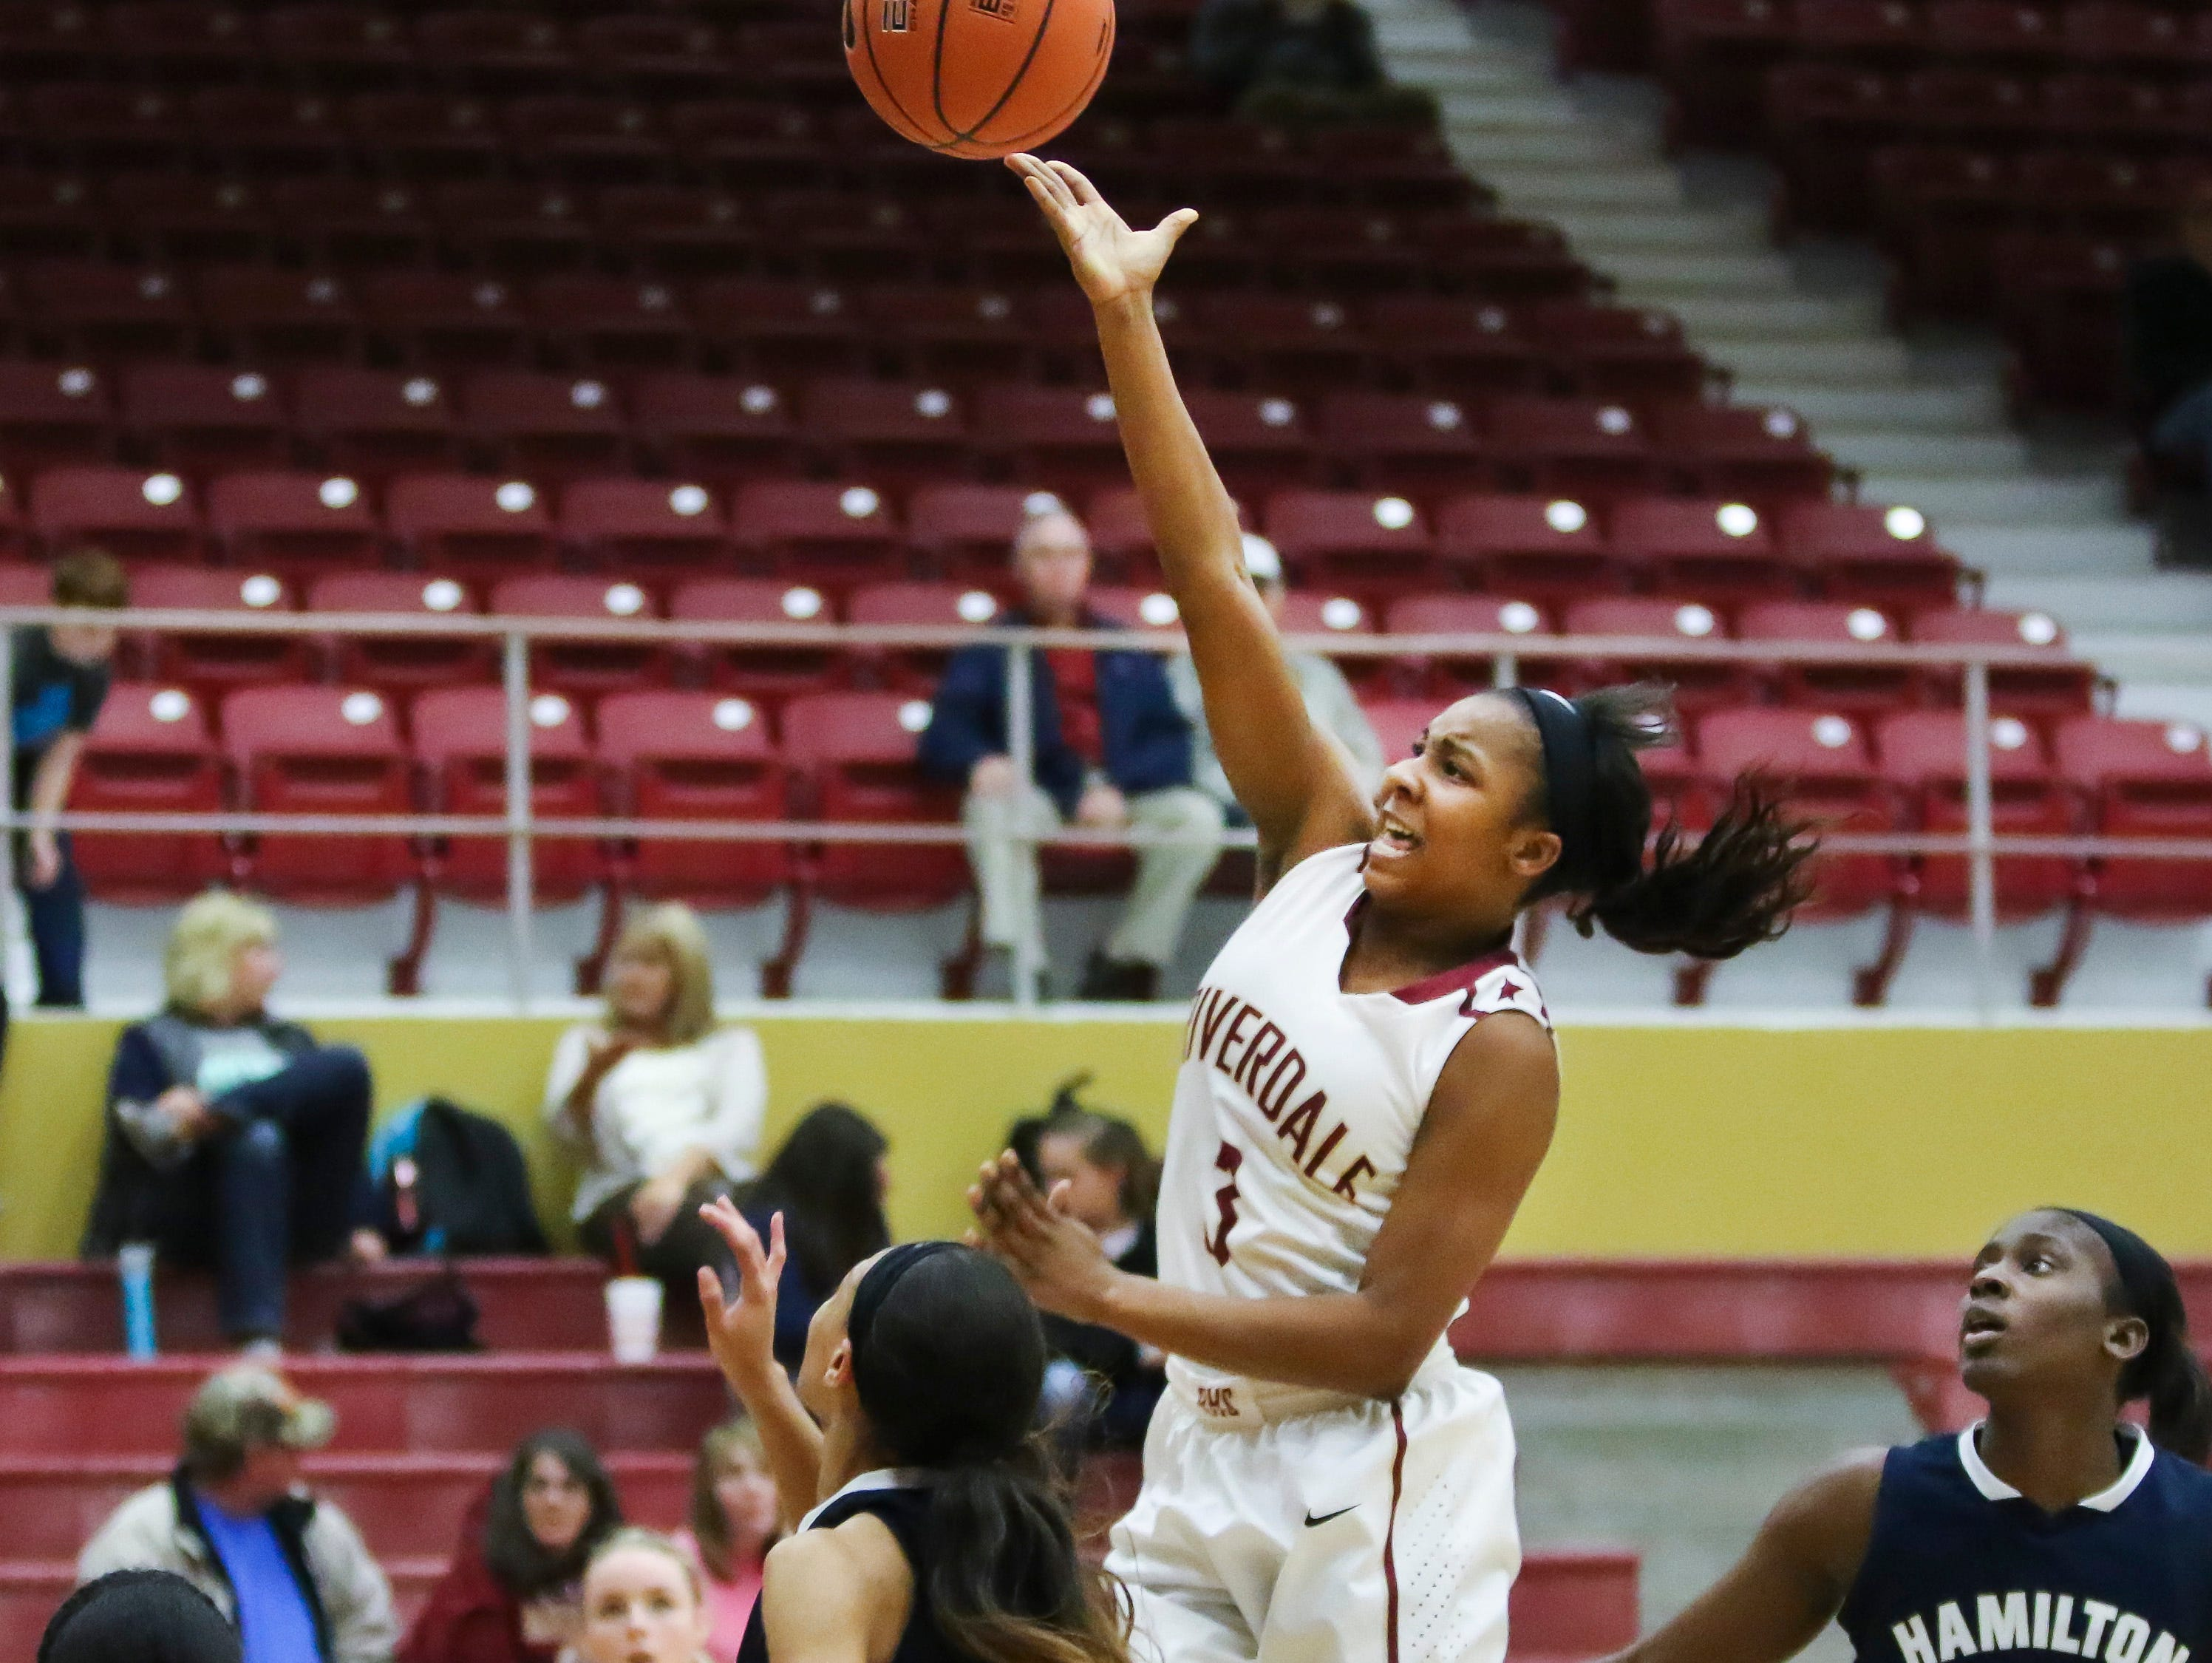 Riverdale's Anastasia Hayes goes up fro a shot during Tuesday's 60-54 win over Hamilton Heights.